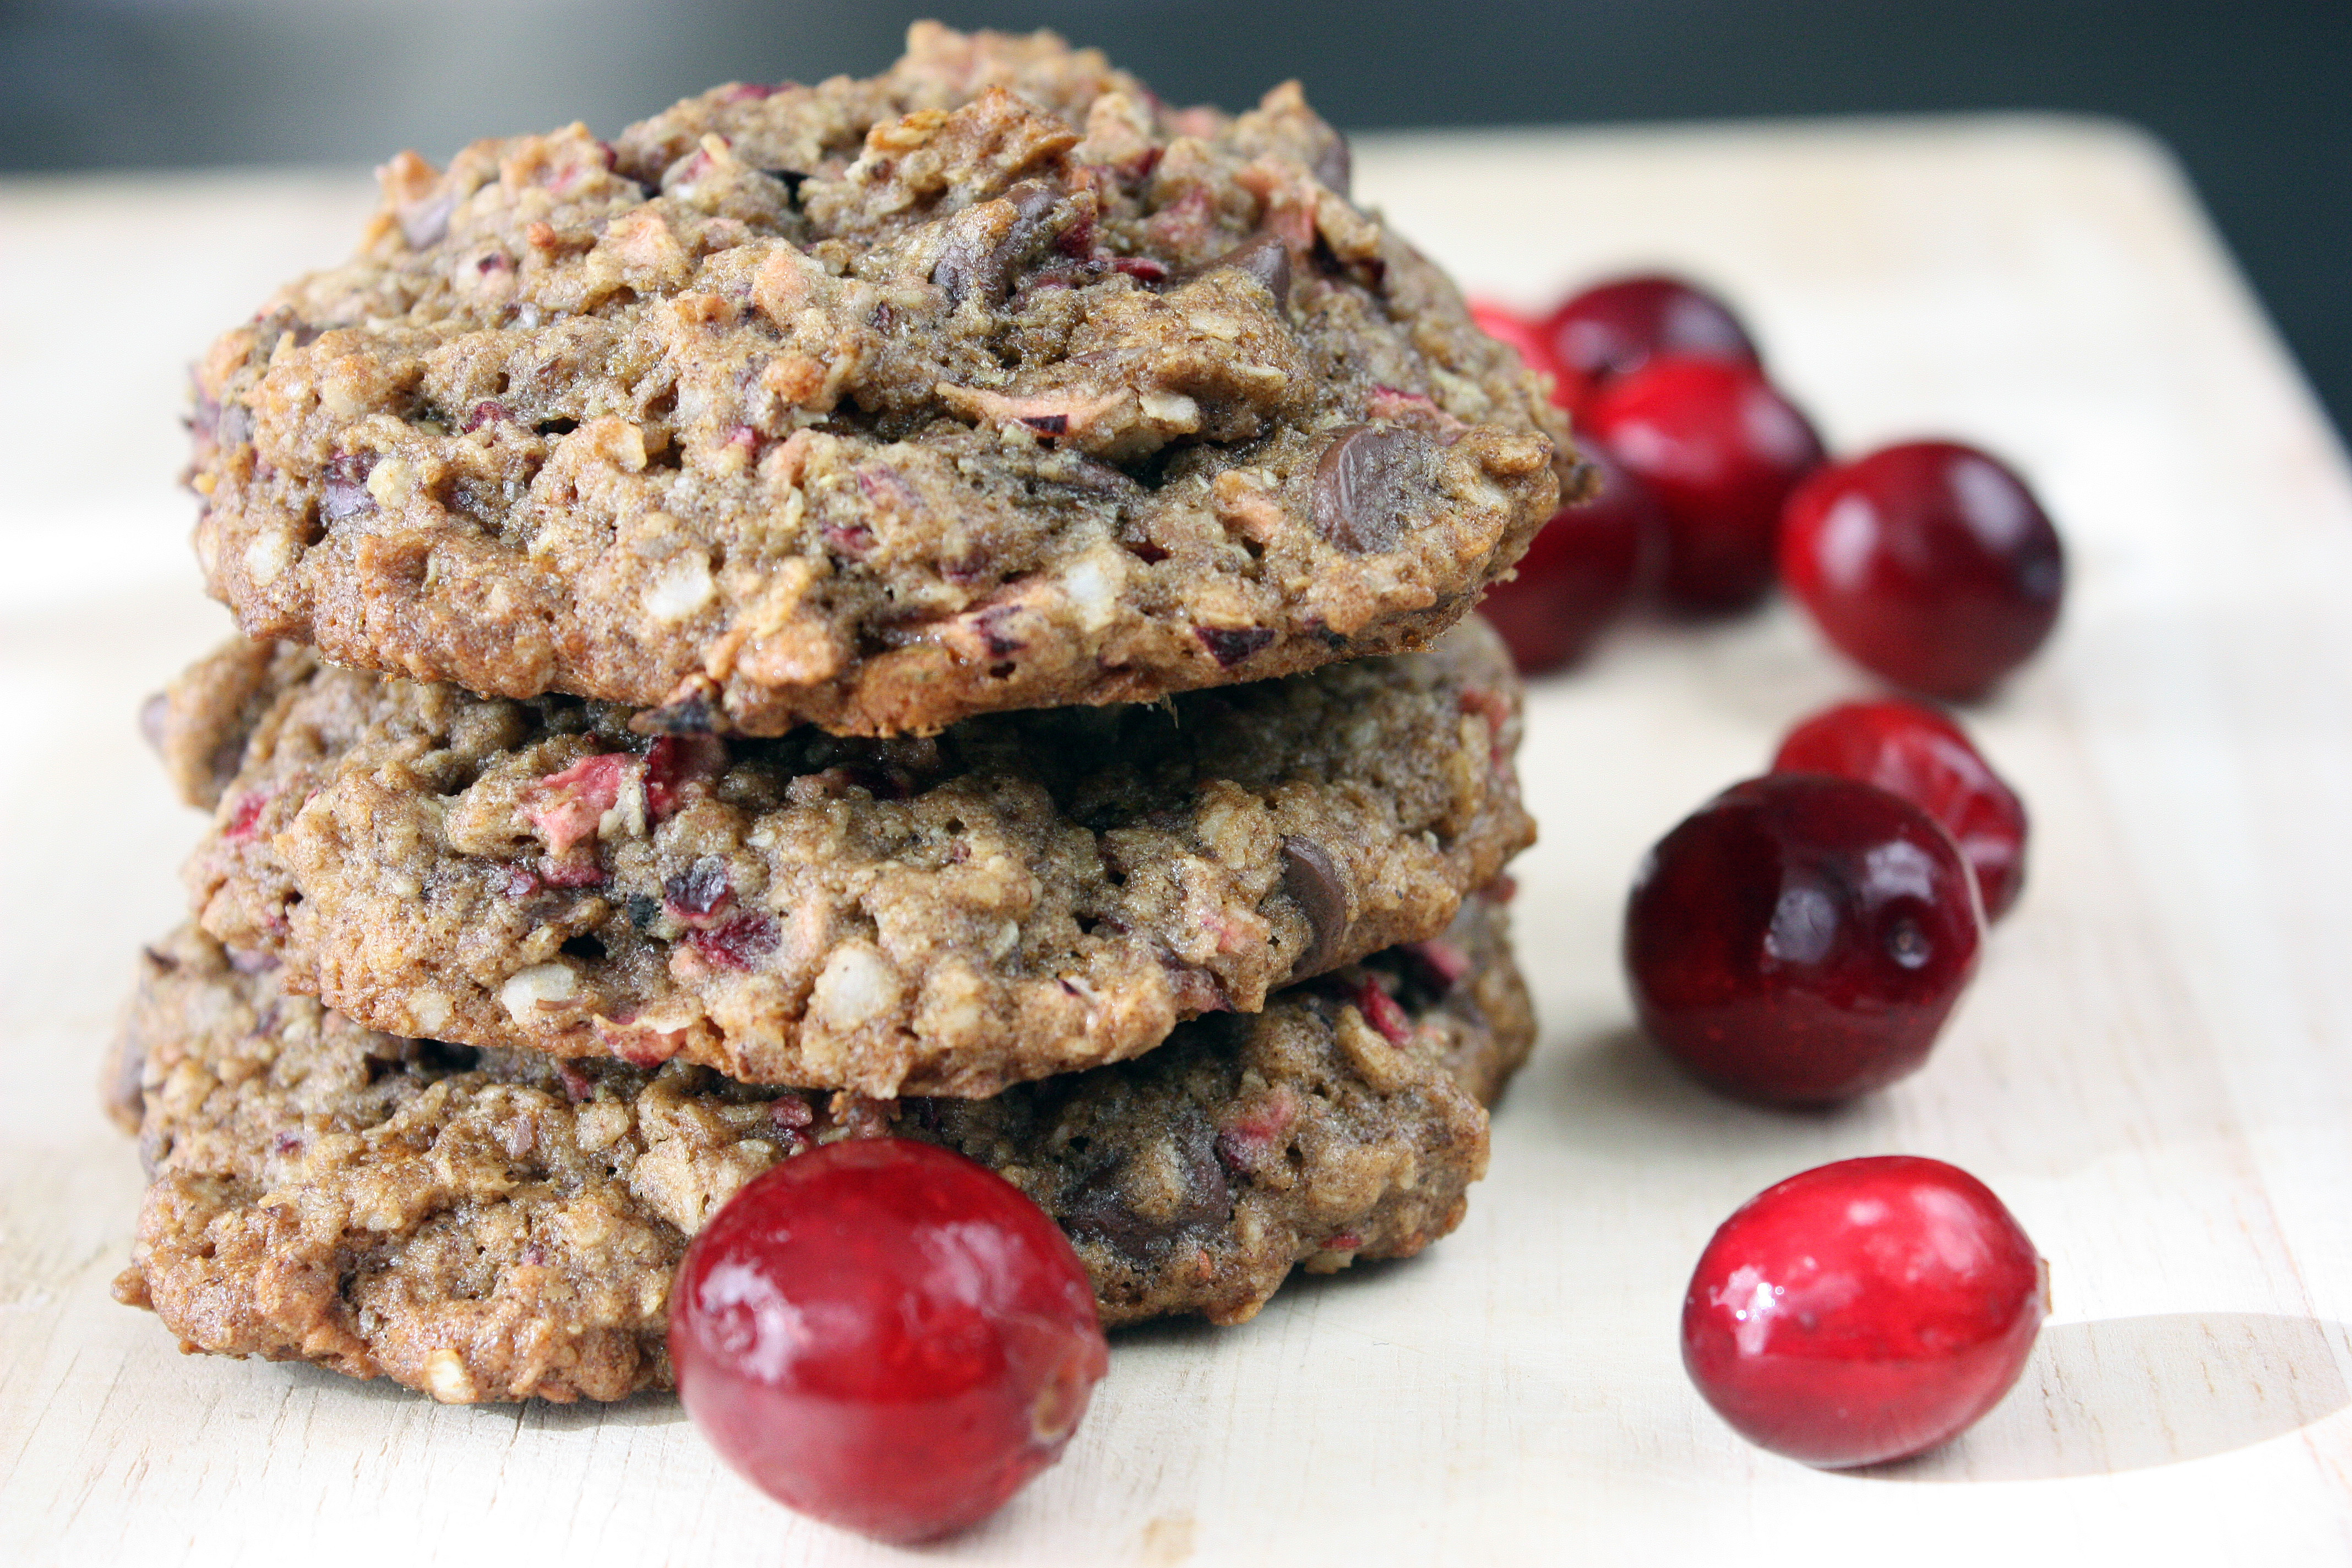 Cranberry Chocolate Chip Multi-Grain Cookies (Gluten-Free, Dairy-Free)